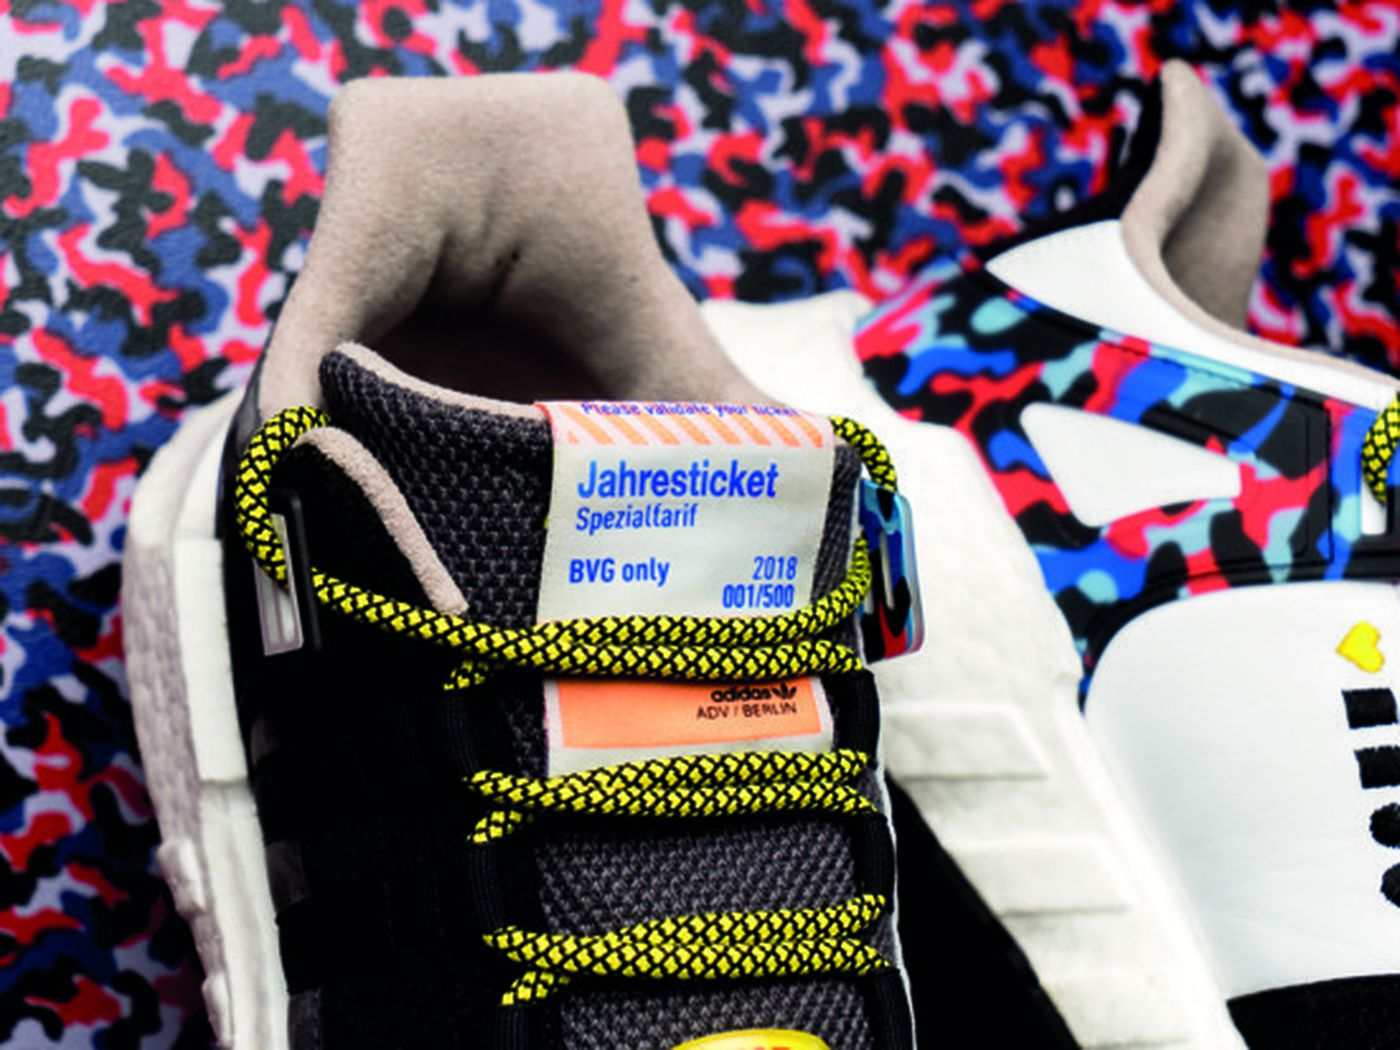 Berlin's transport authority and Adidas release a pair of